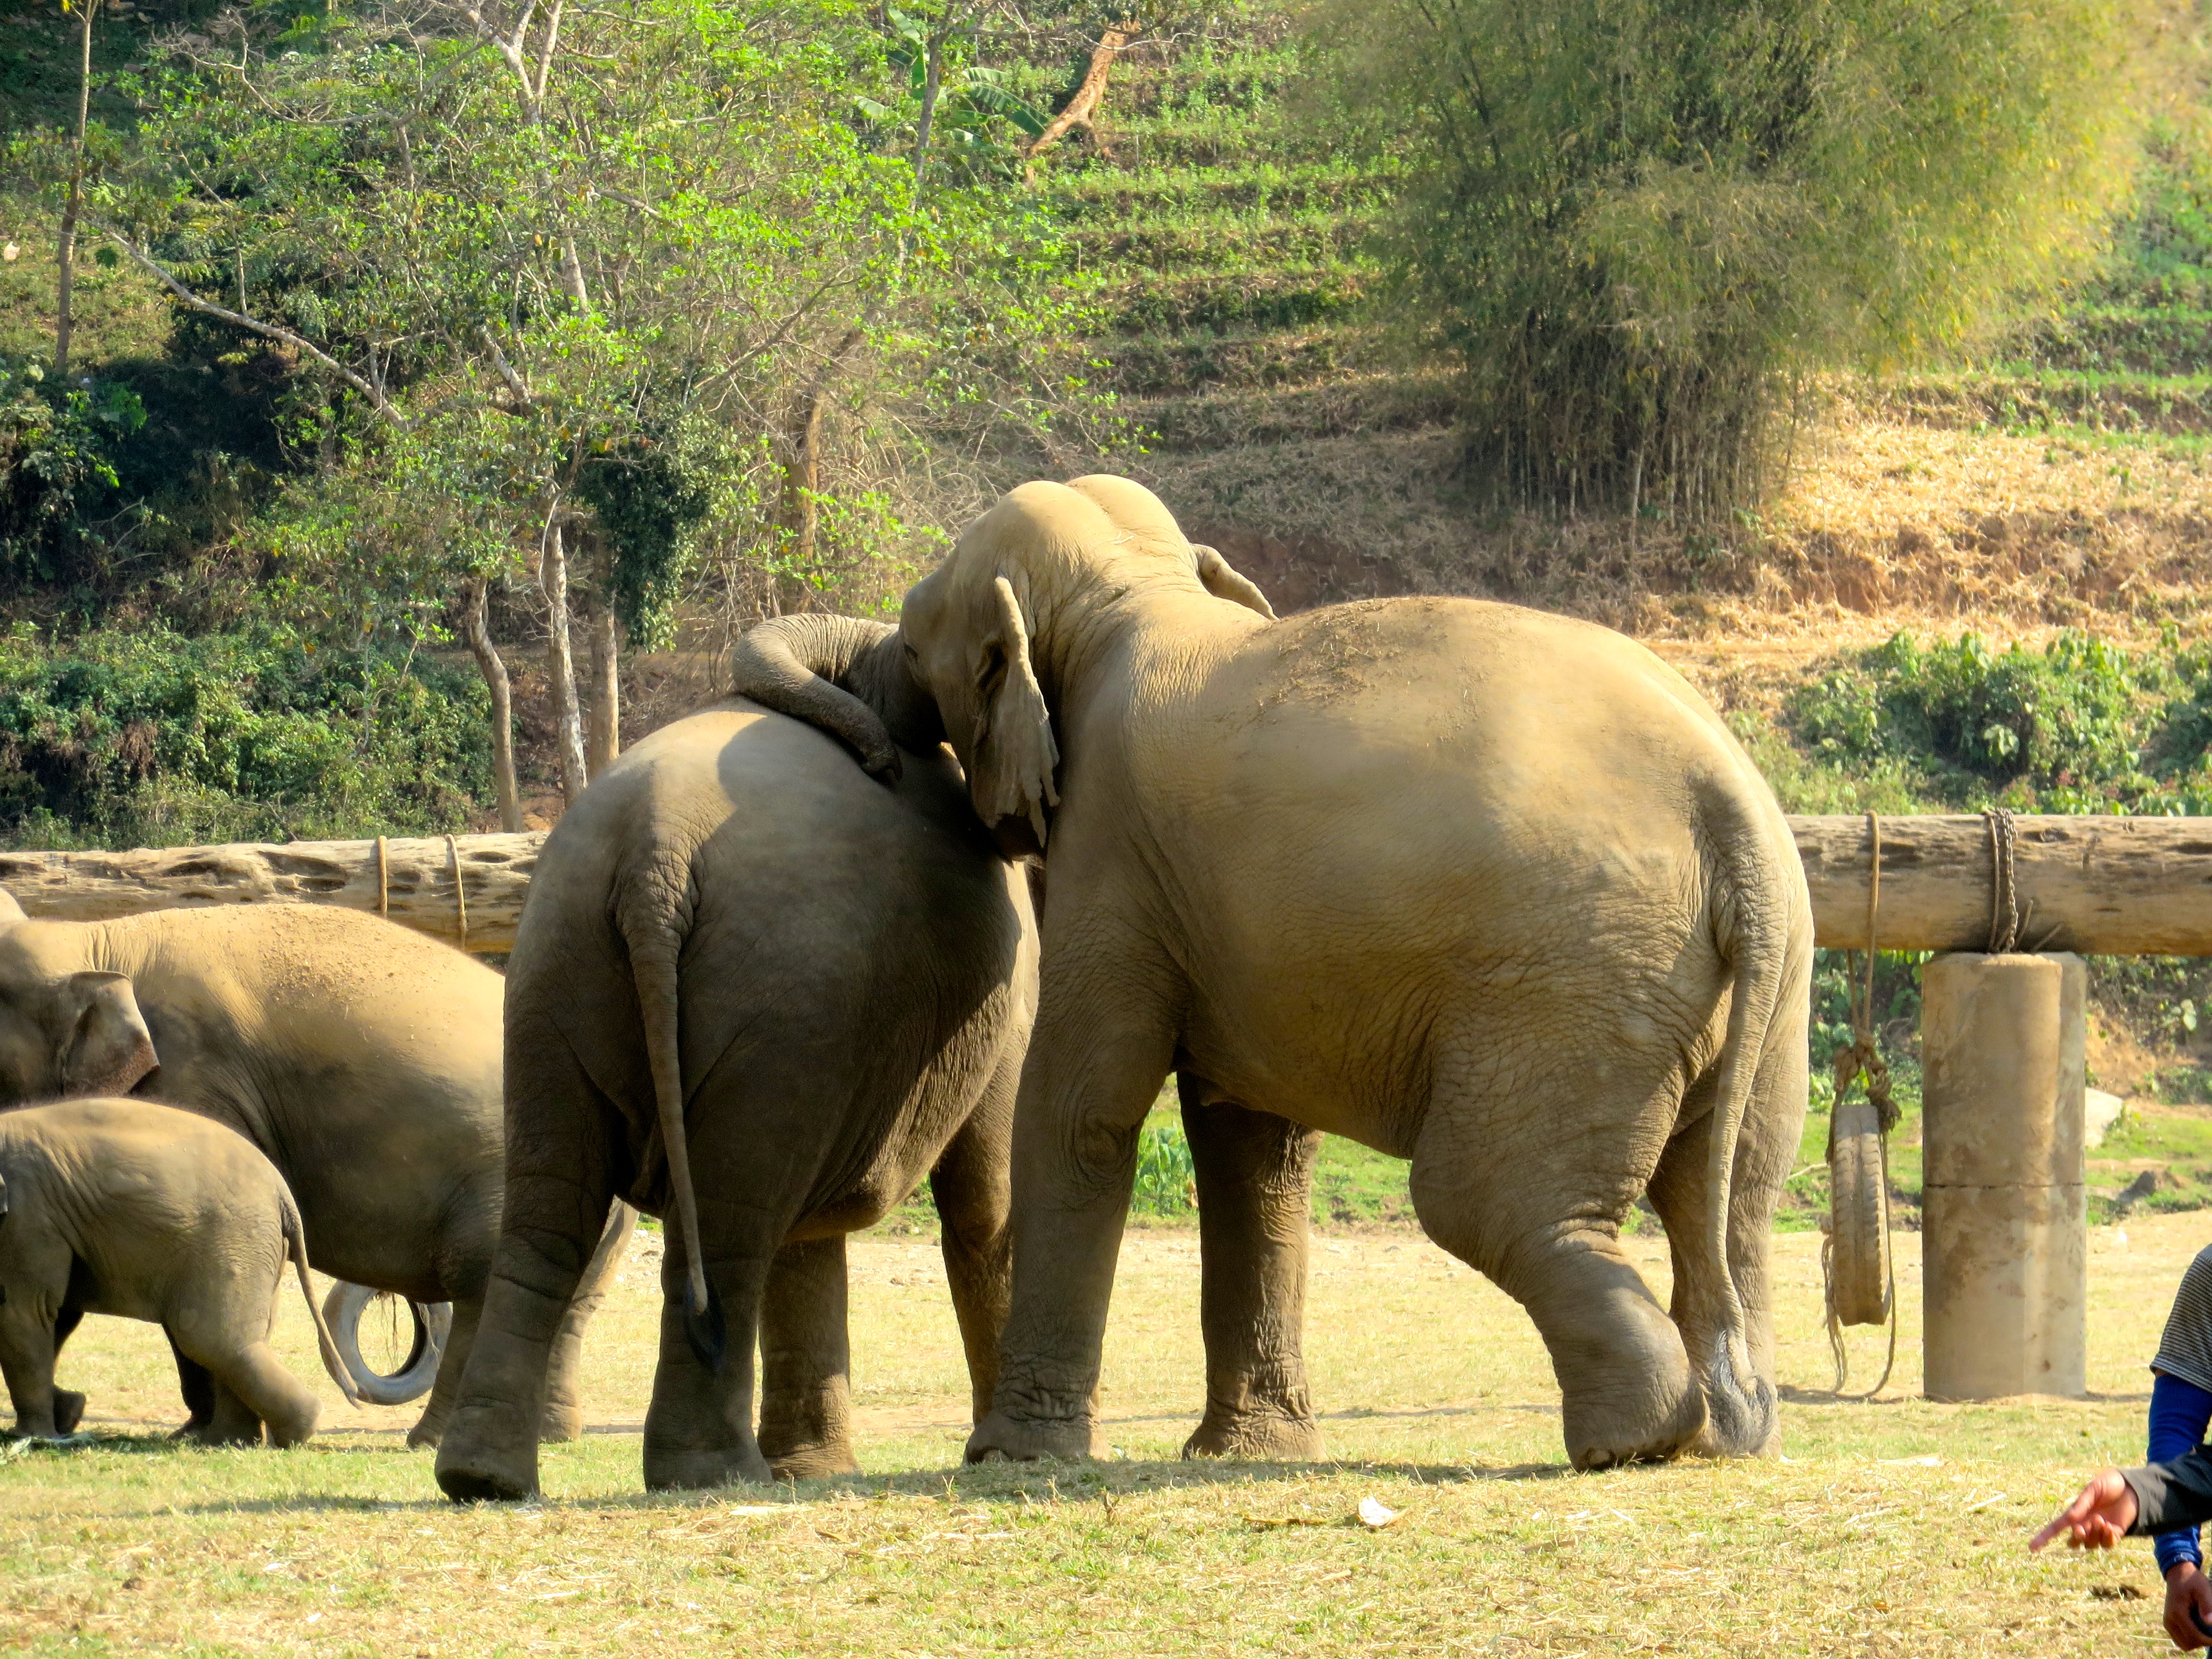 Watch How to Ride an Elephant video